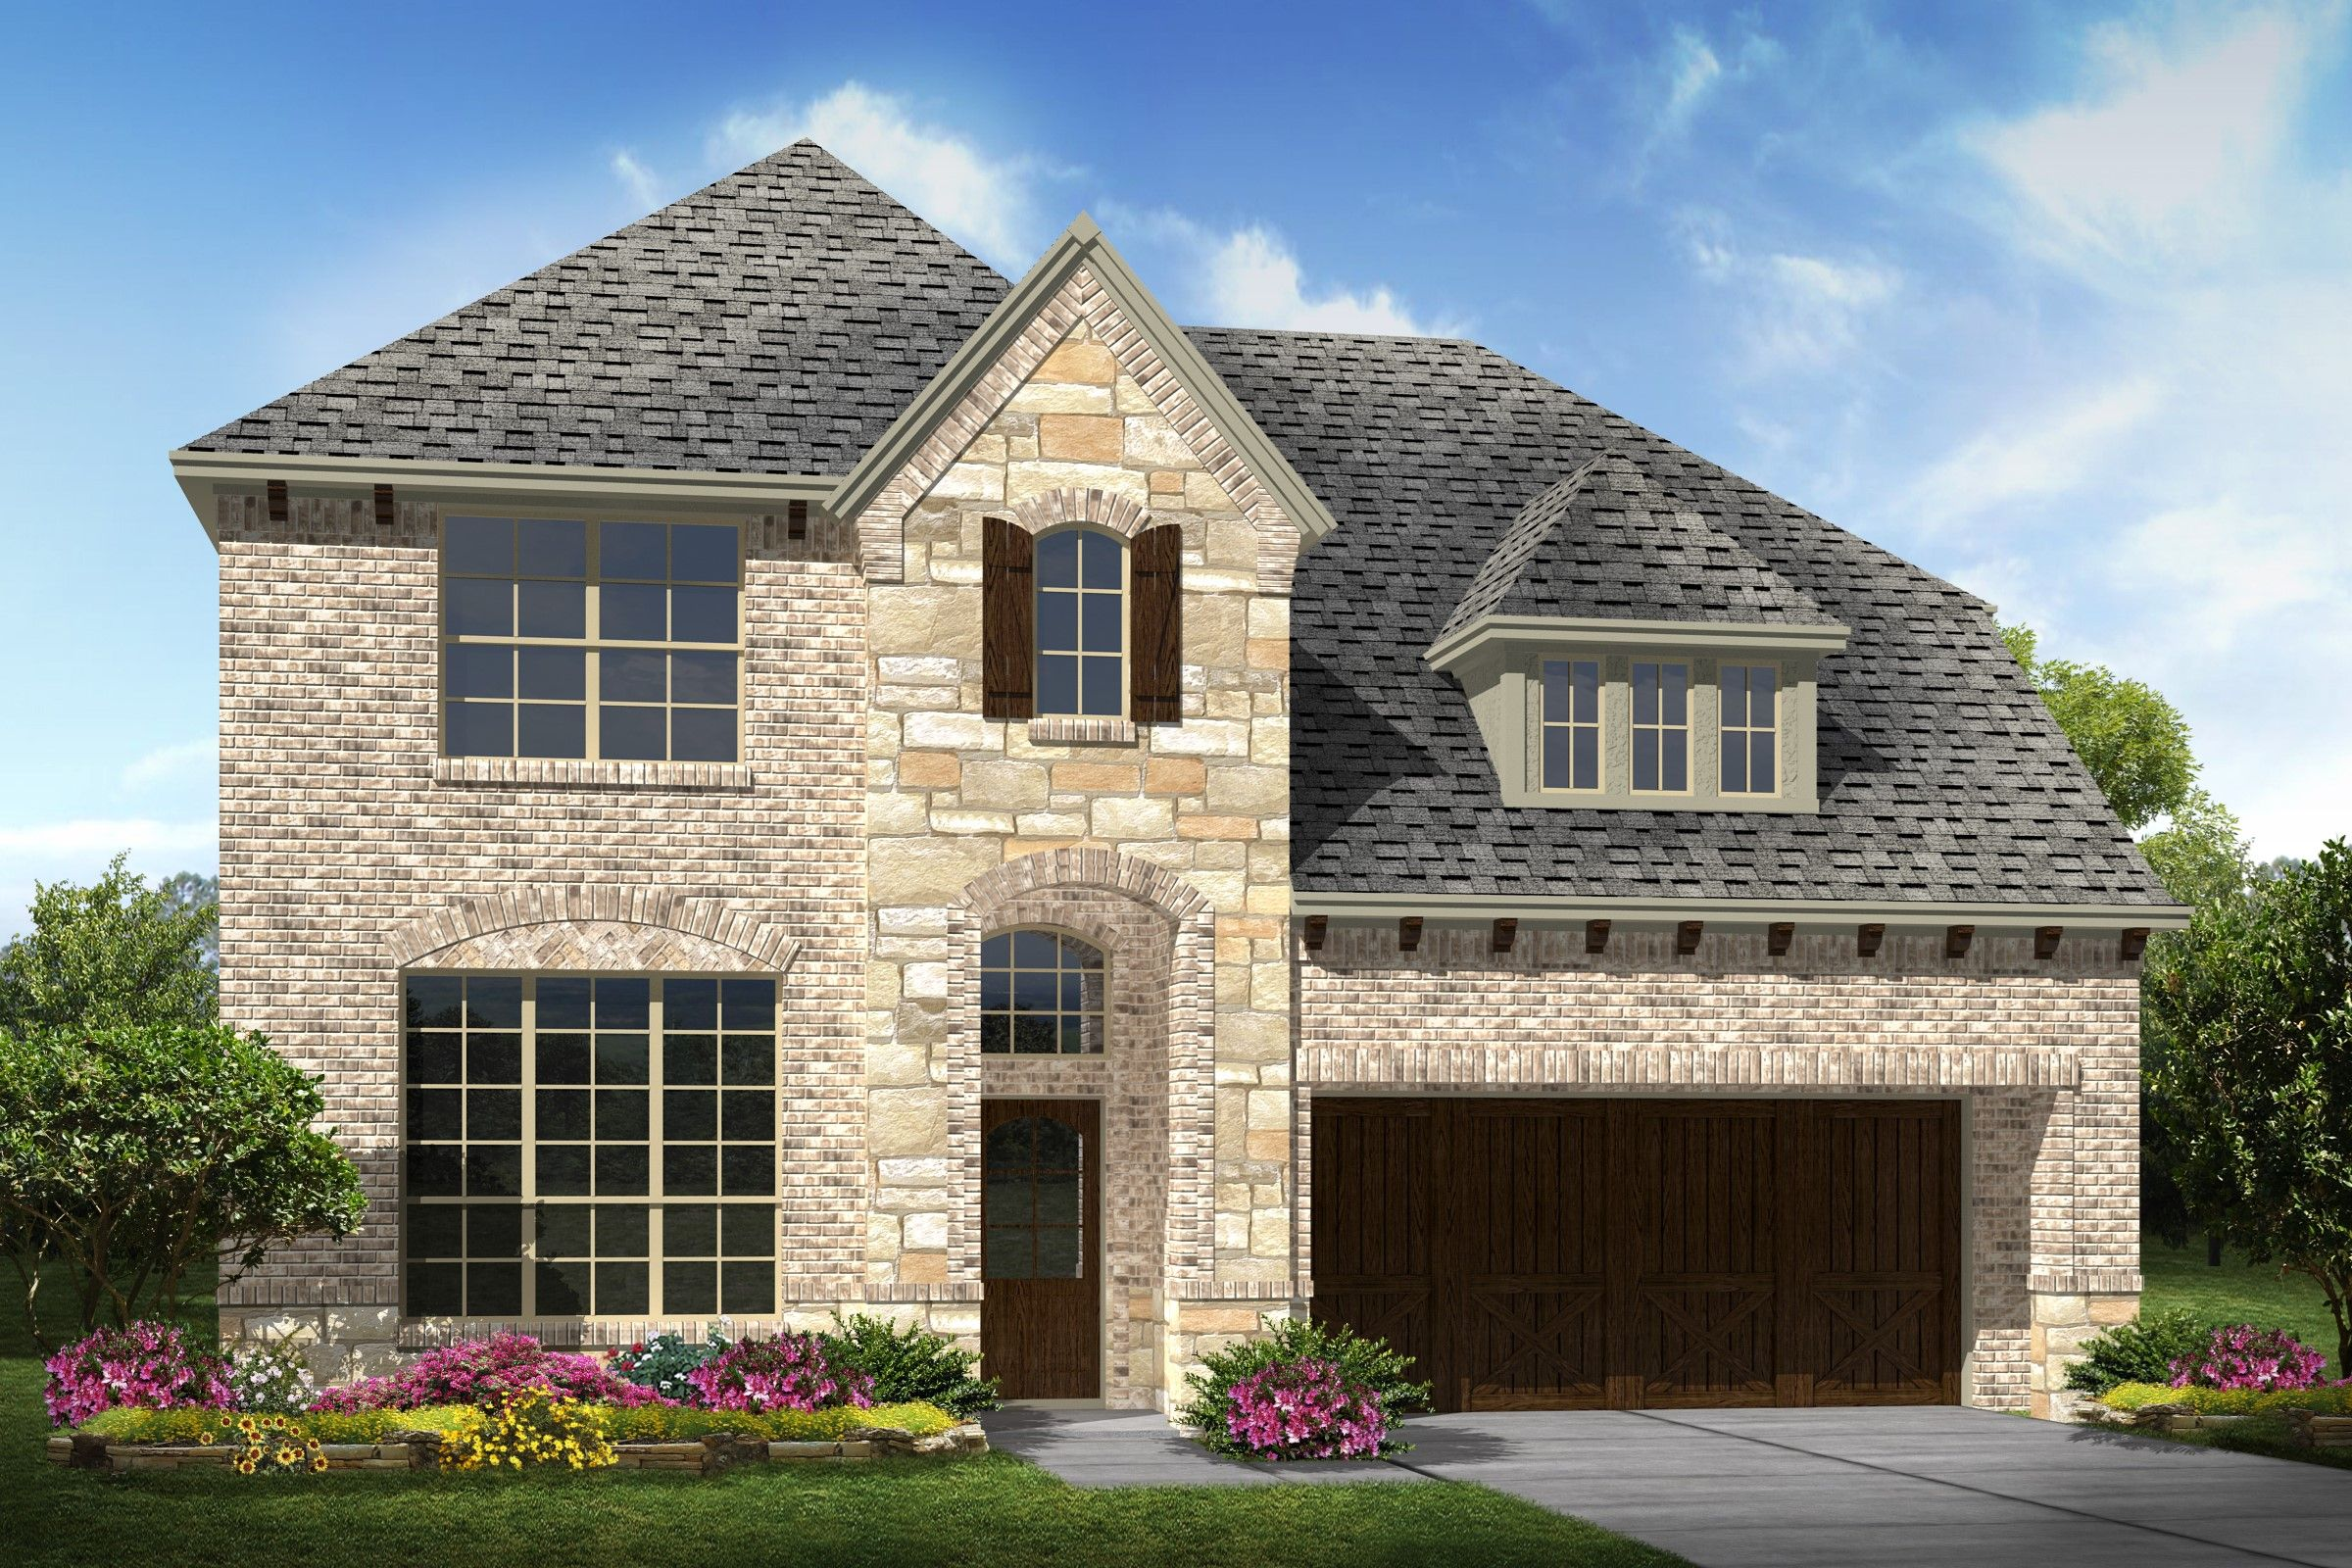 Single Family for Sale at Glade Parks - Summerwood 2608 San Jacinto Drive Euless, Texas 76039 United States